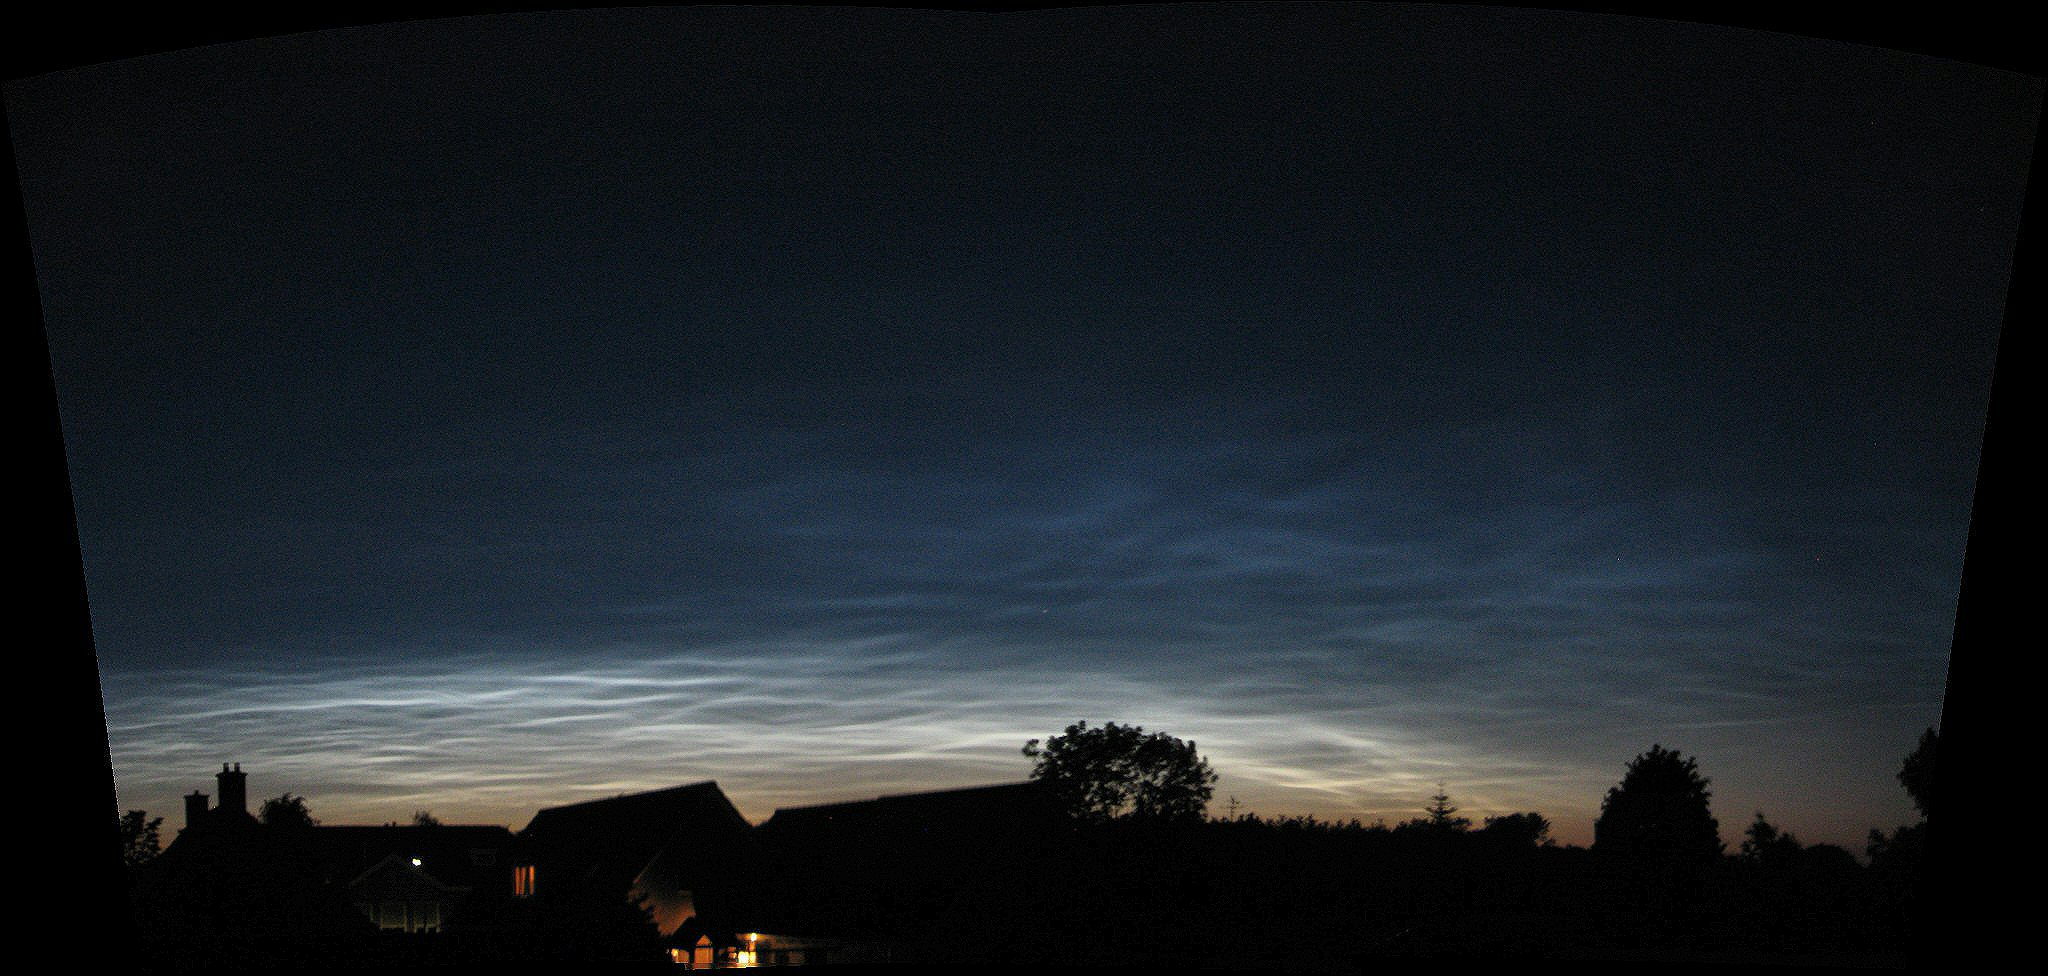 12-06-2019-noctilucent-clouds-22utc.jpg